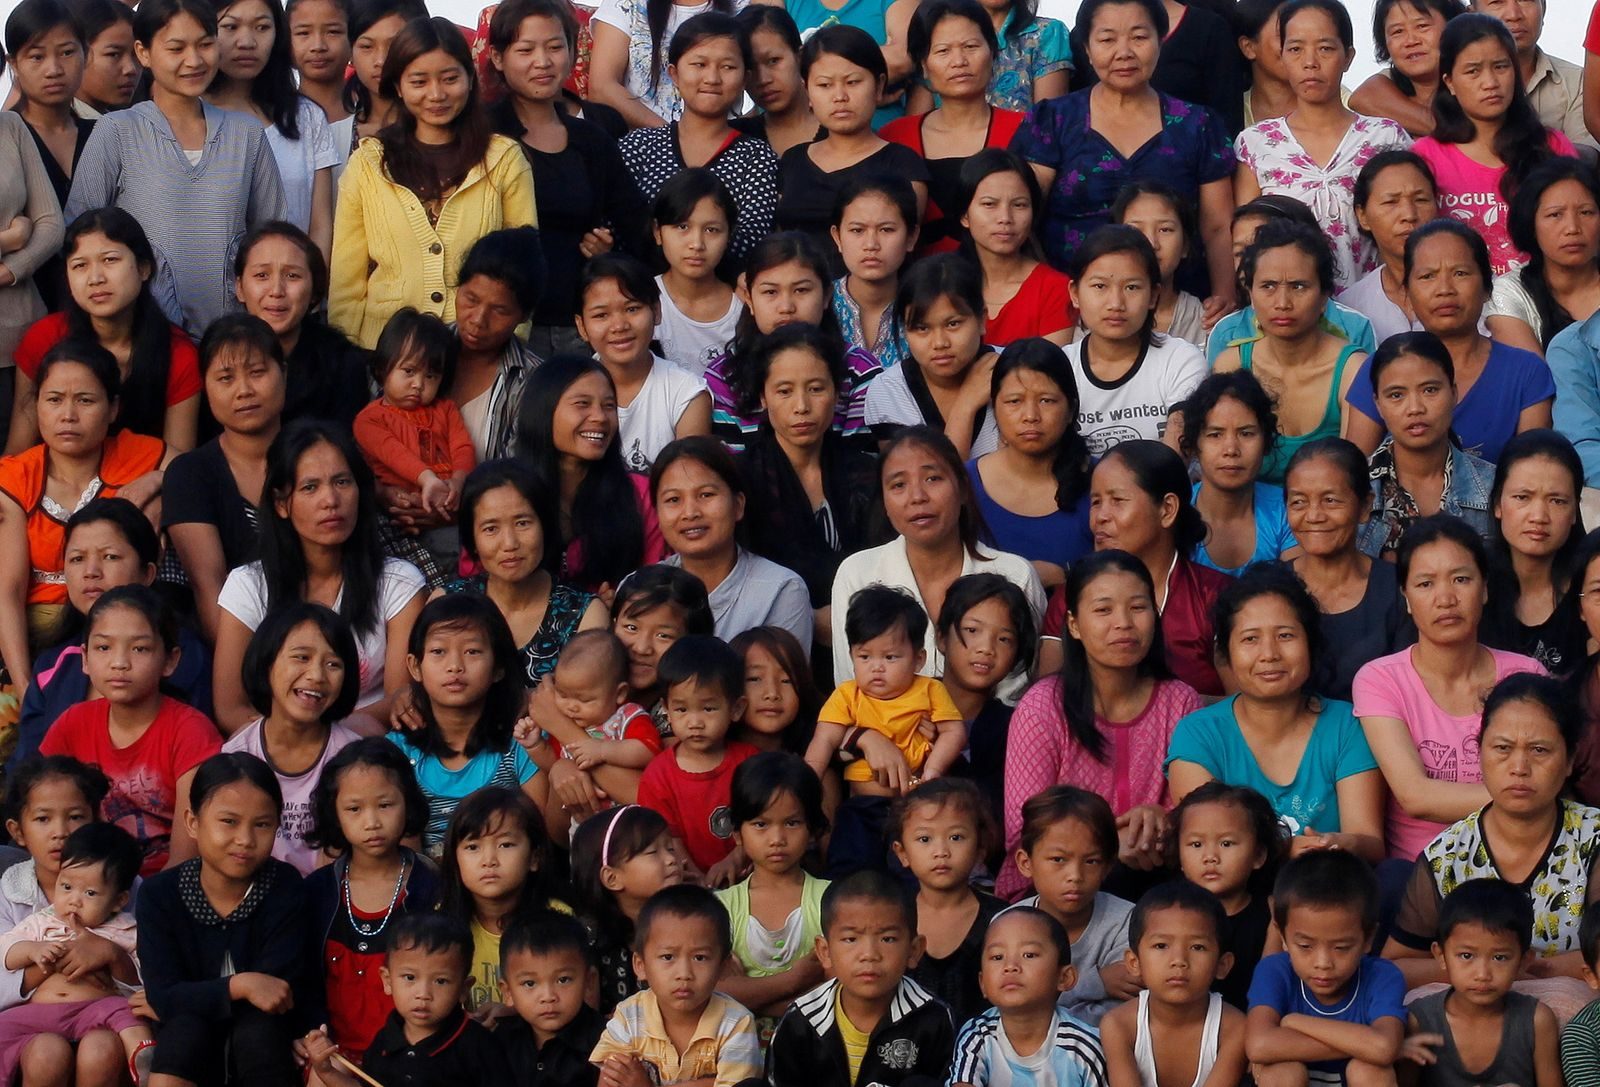 FILE PHOTO: Family members of Ziona poses for group photograph outside their residence in Baktawng